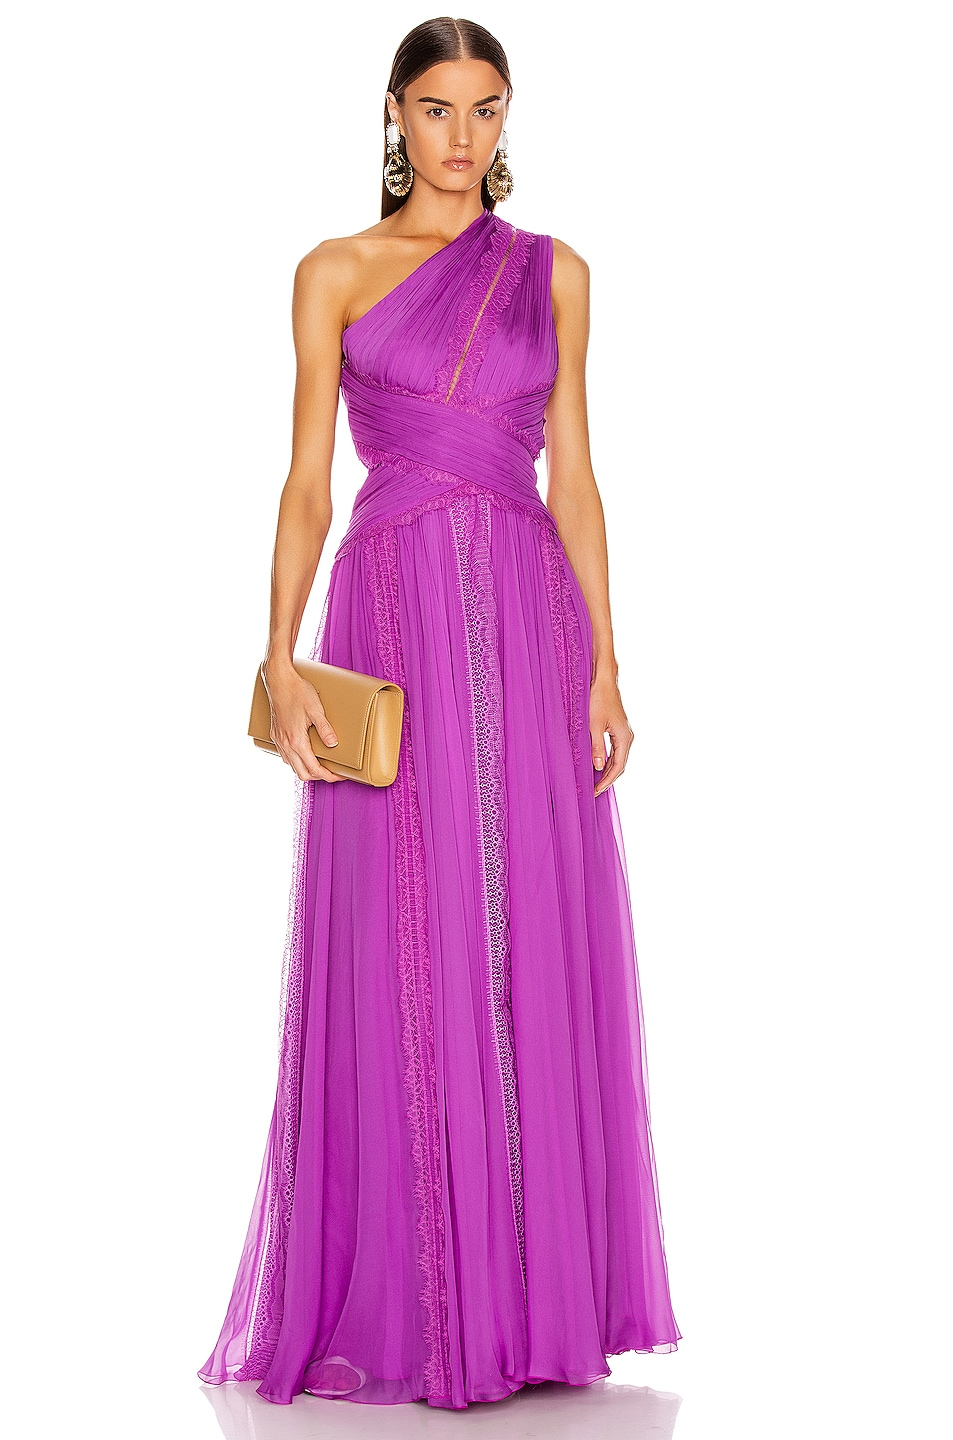 Image 1 of Zuhair Murad Silk Chiffon Long Dress in Hyacinth Violet